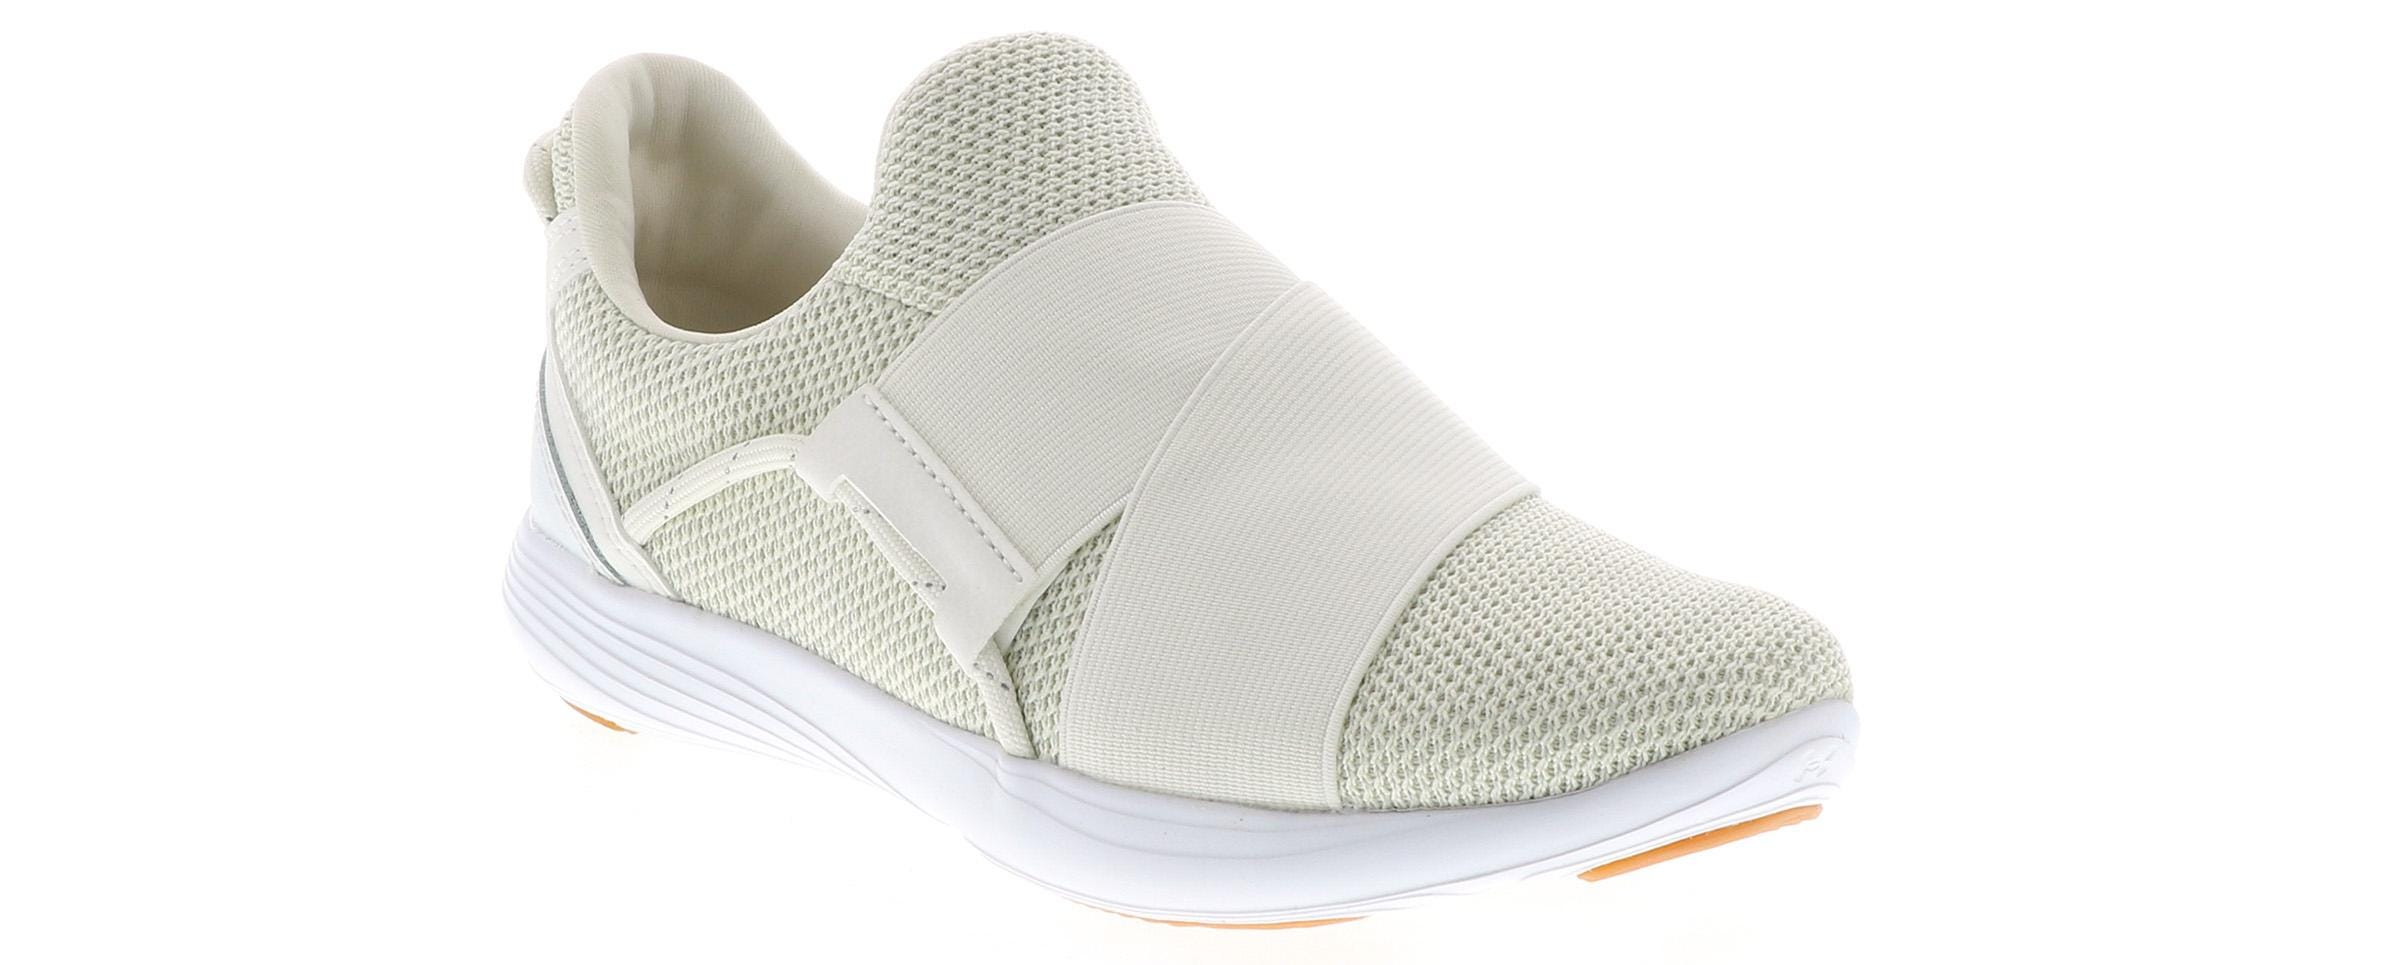 YSLC Polar Bear Geometry Running Shoes Lightweight for Men Sneaker Rubber Sole Breathable Shoes